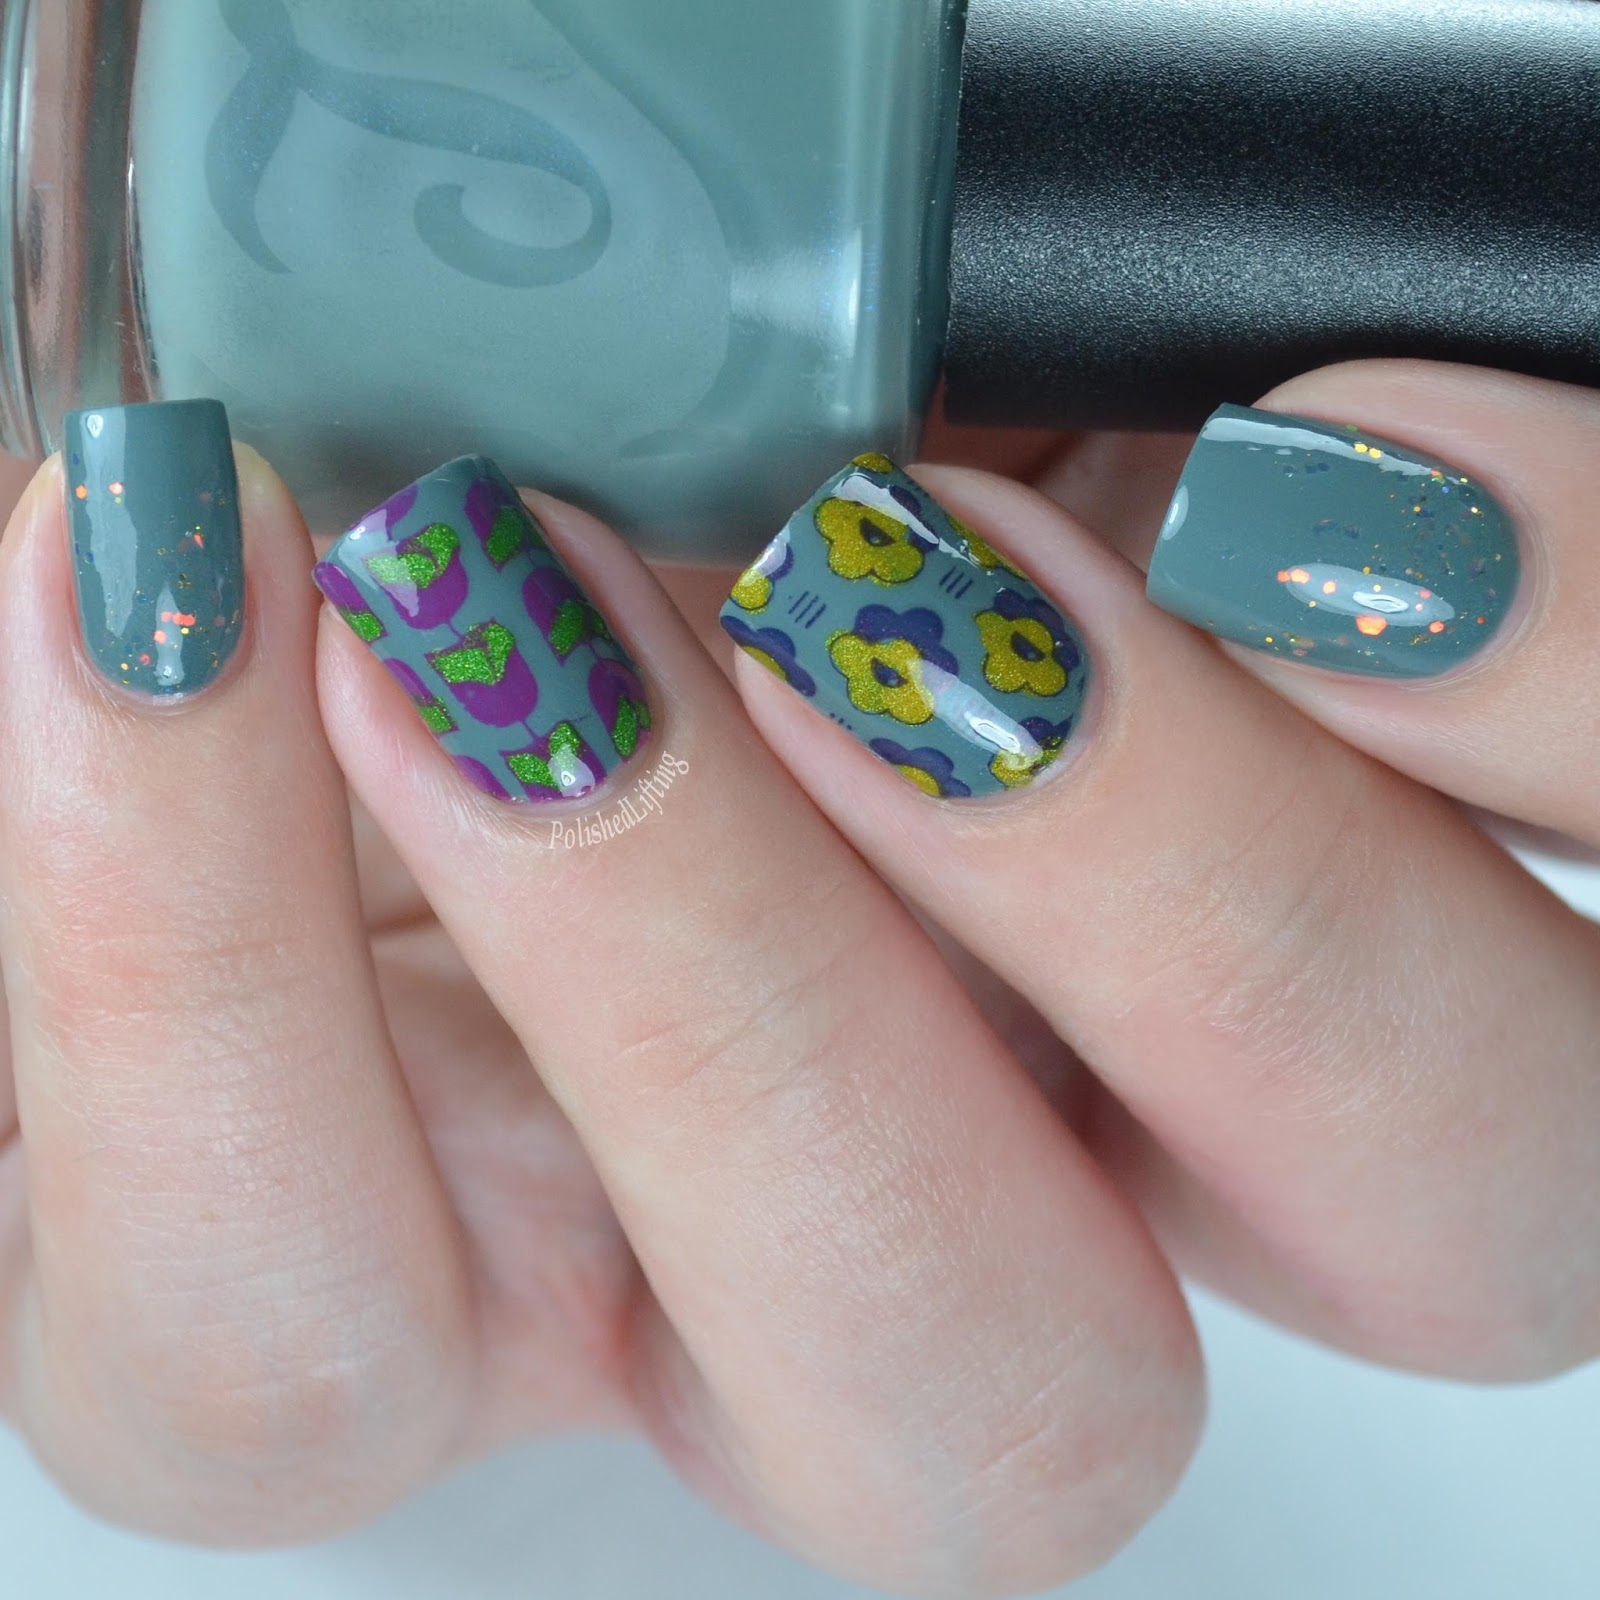 Polished lifting lou it yourself fallfetti collection nail art stamped flowers solutioingenieria Choice Image